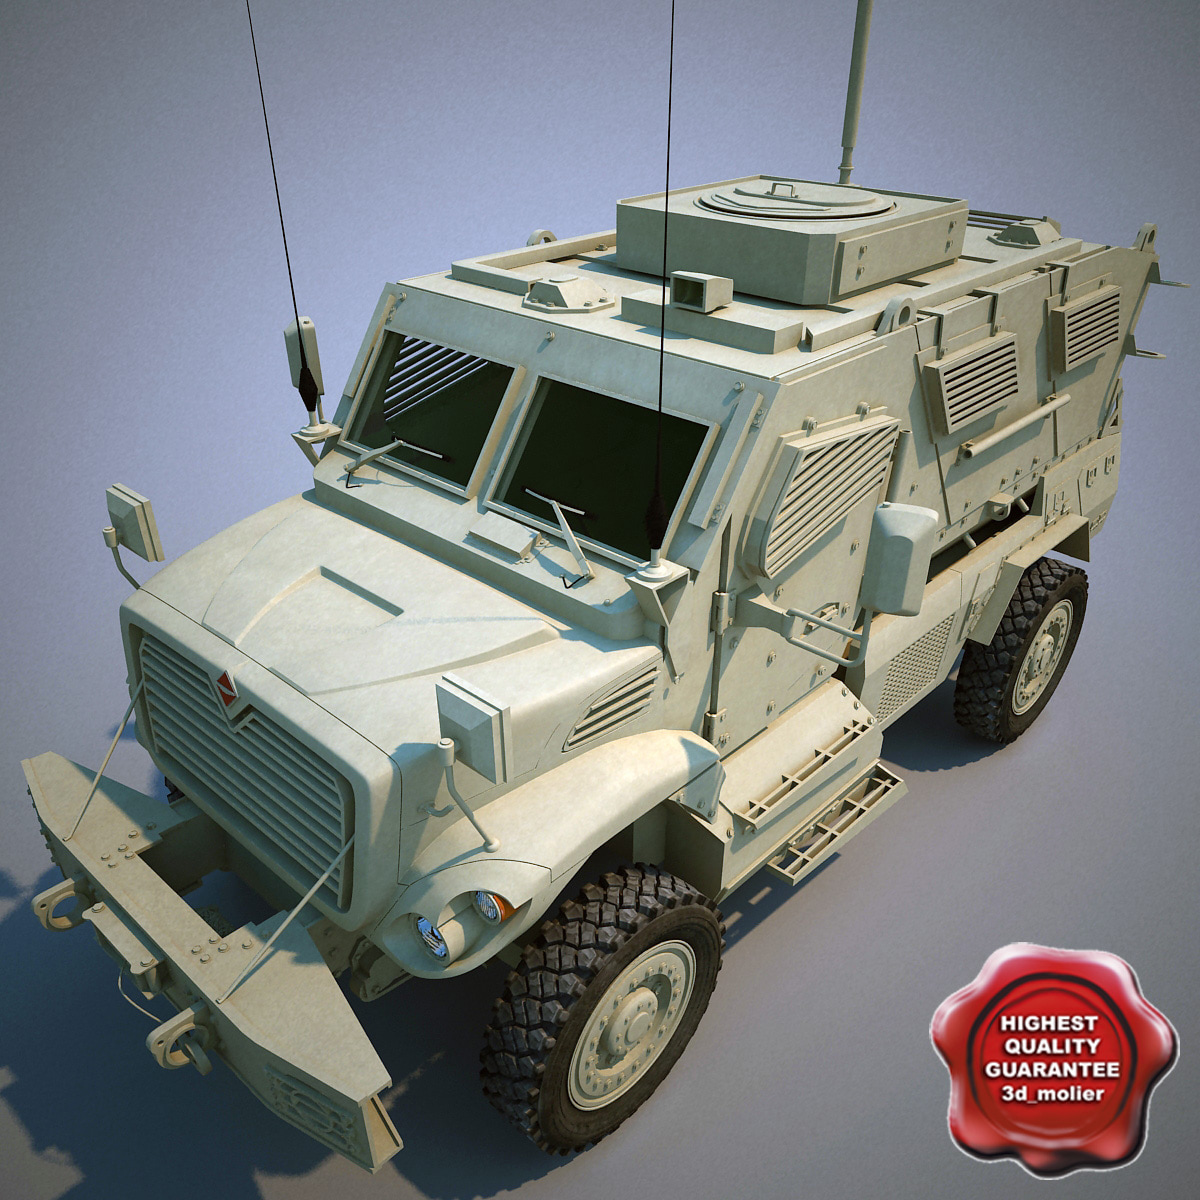 MaxxPro_MRAP_Armoured_Fighting_Vehicle_V3_00.jpg